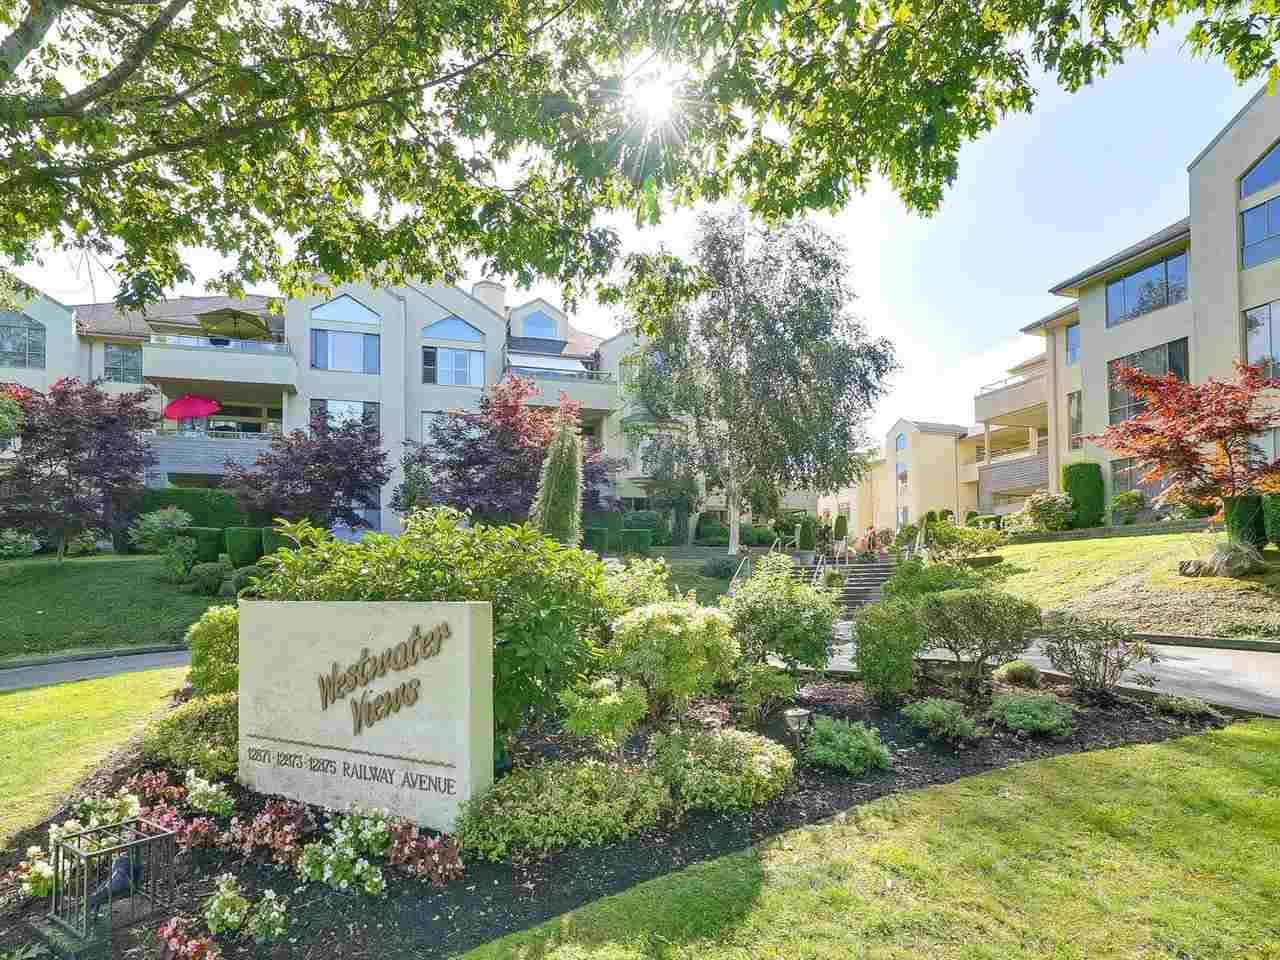 Main Photo: 123 12873 RAILWAY AVENUE in : Steveston South Condo for sale : MLS®# R2197278